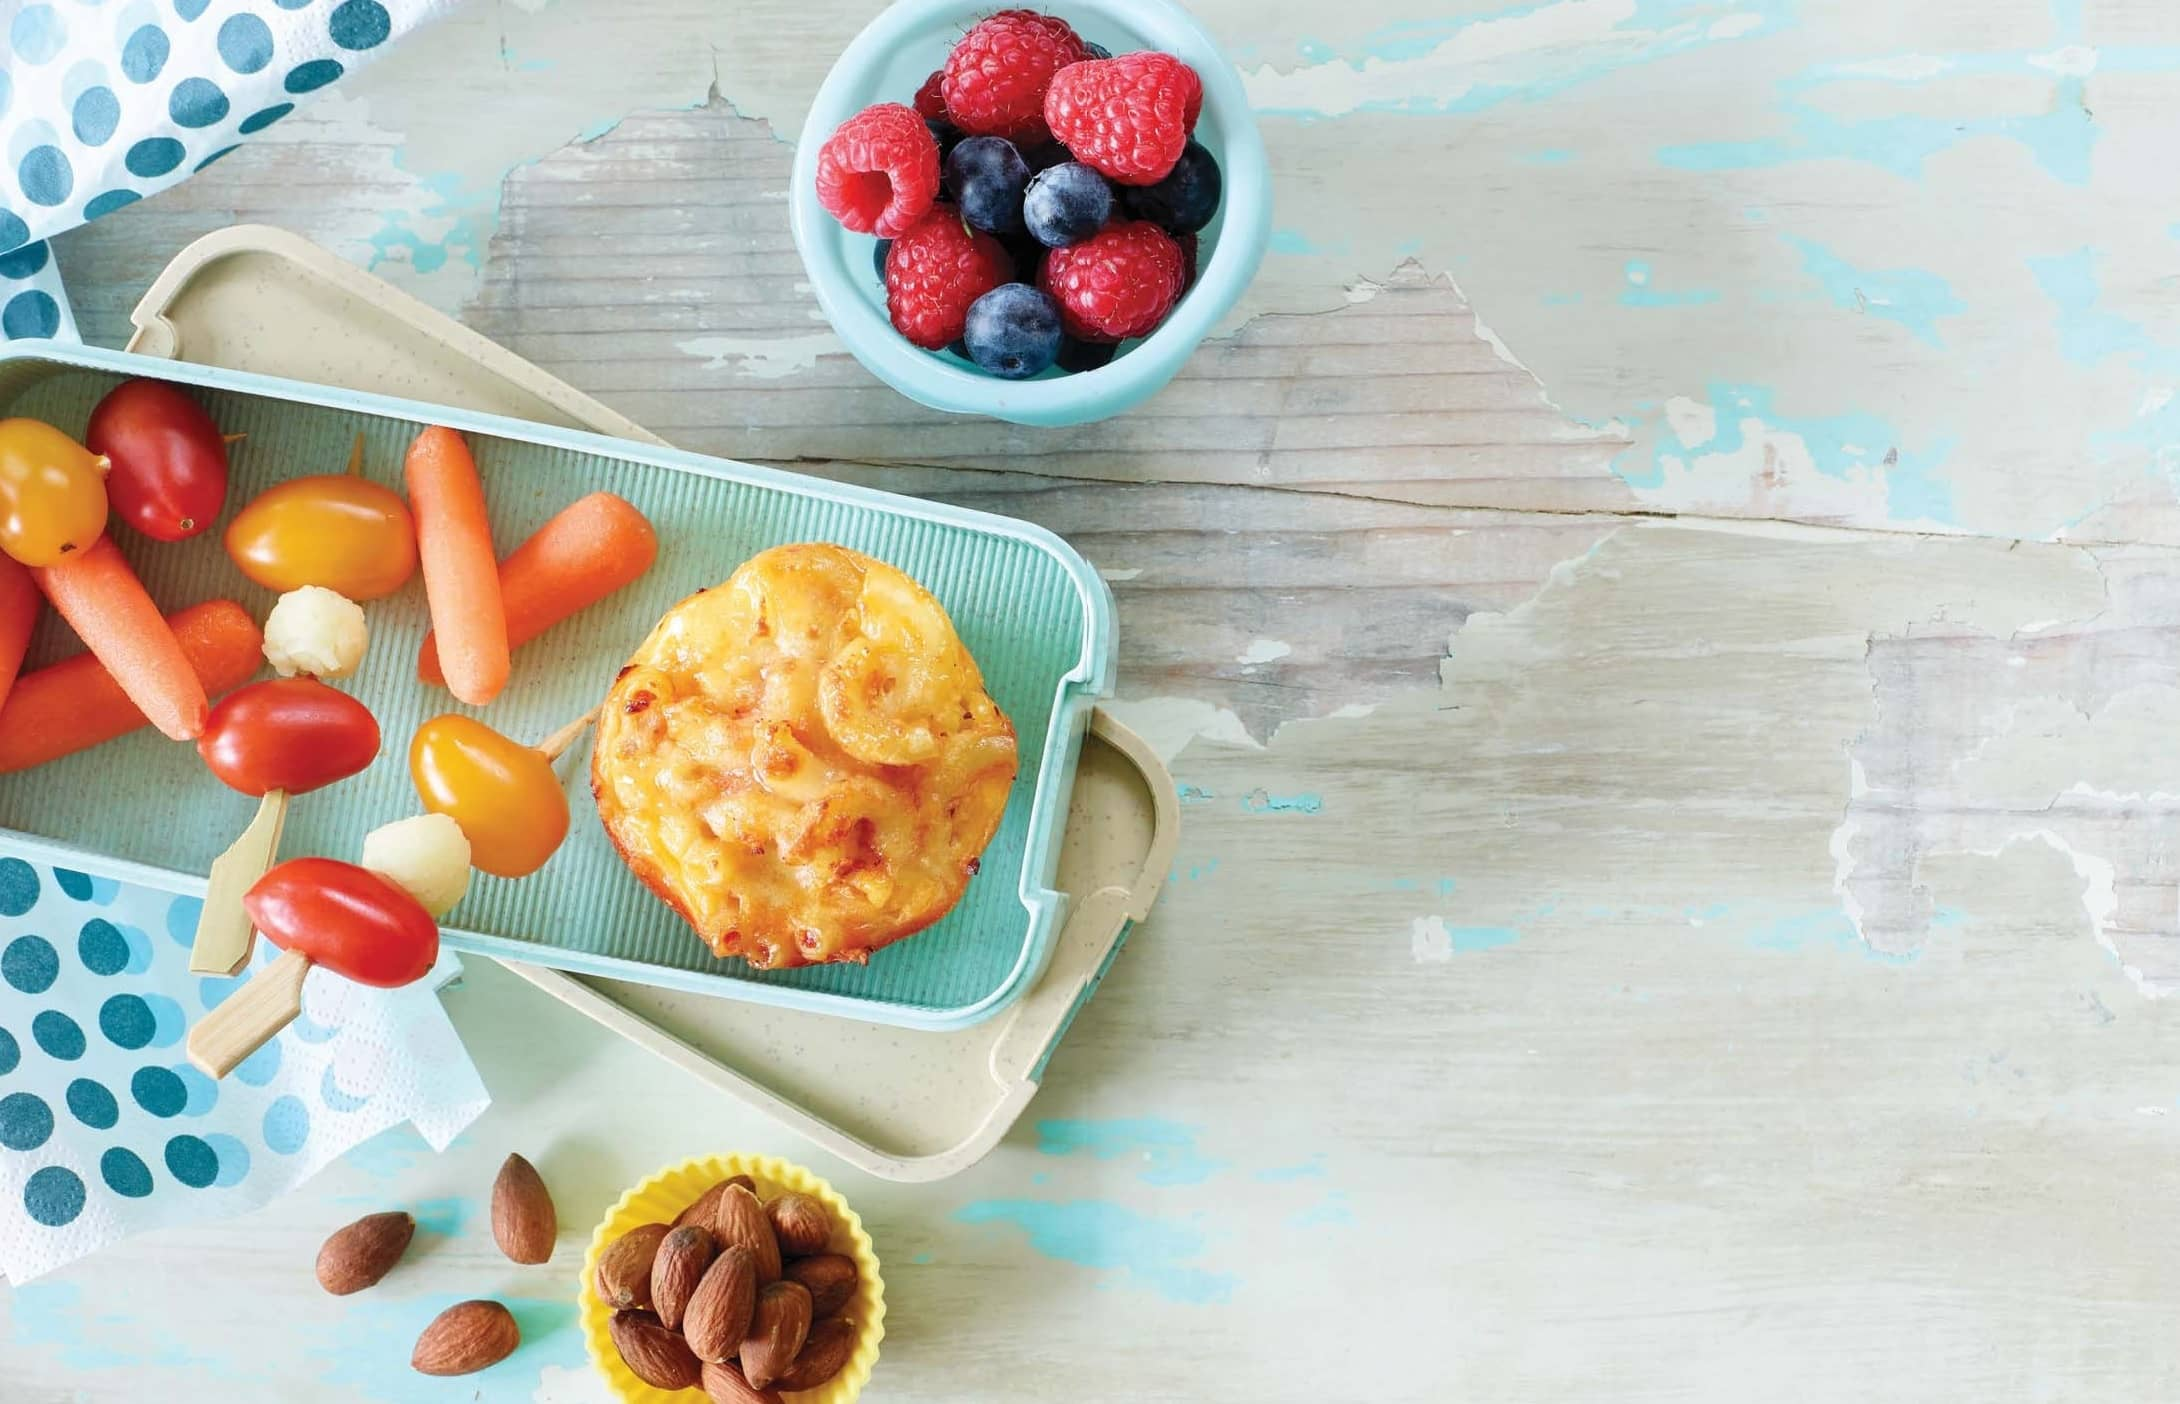 PACK UP THE FUN WITH Healthy KIDS' LUNCHES